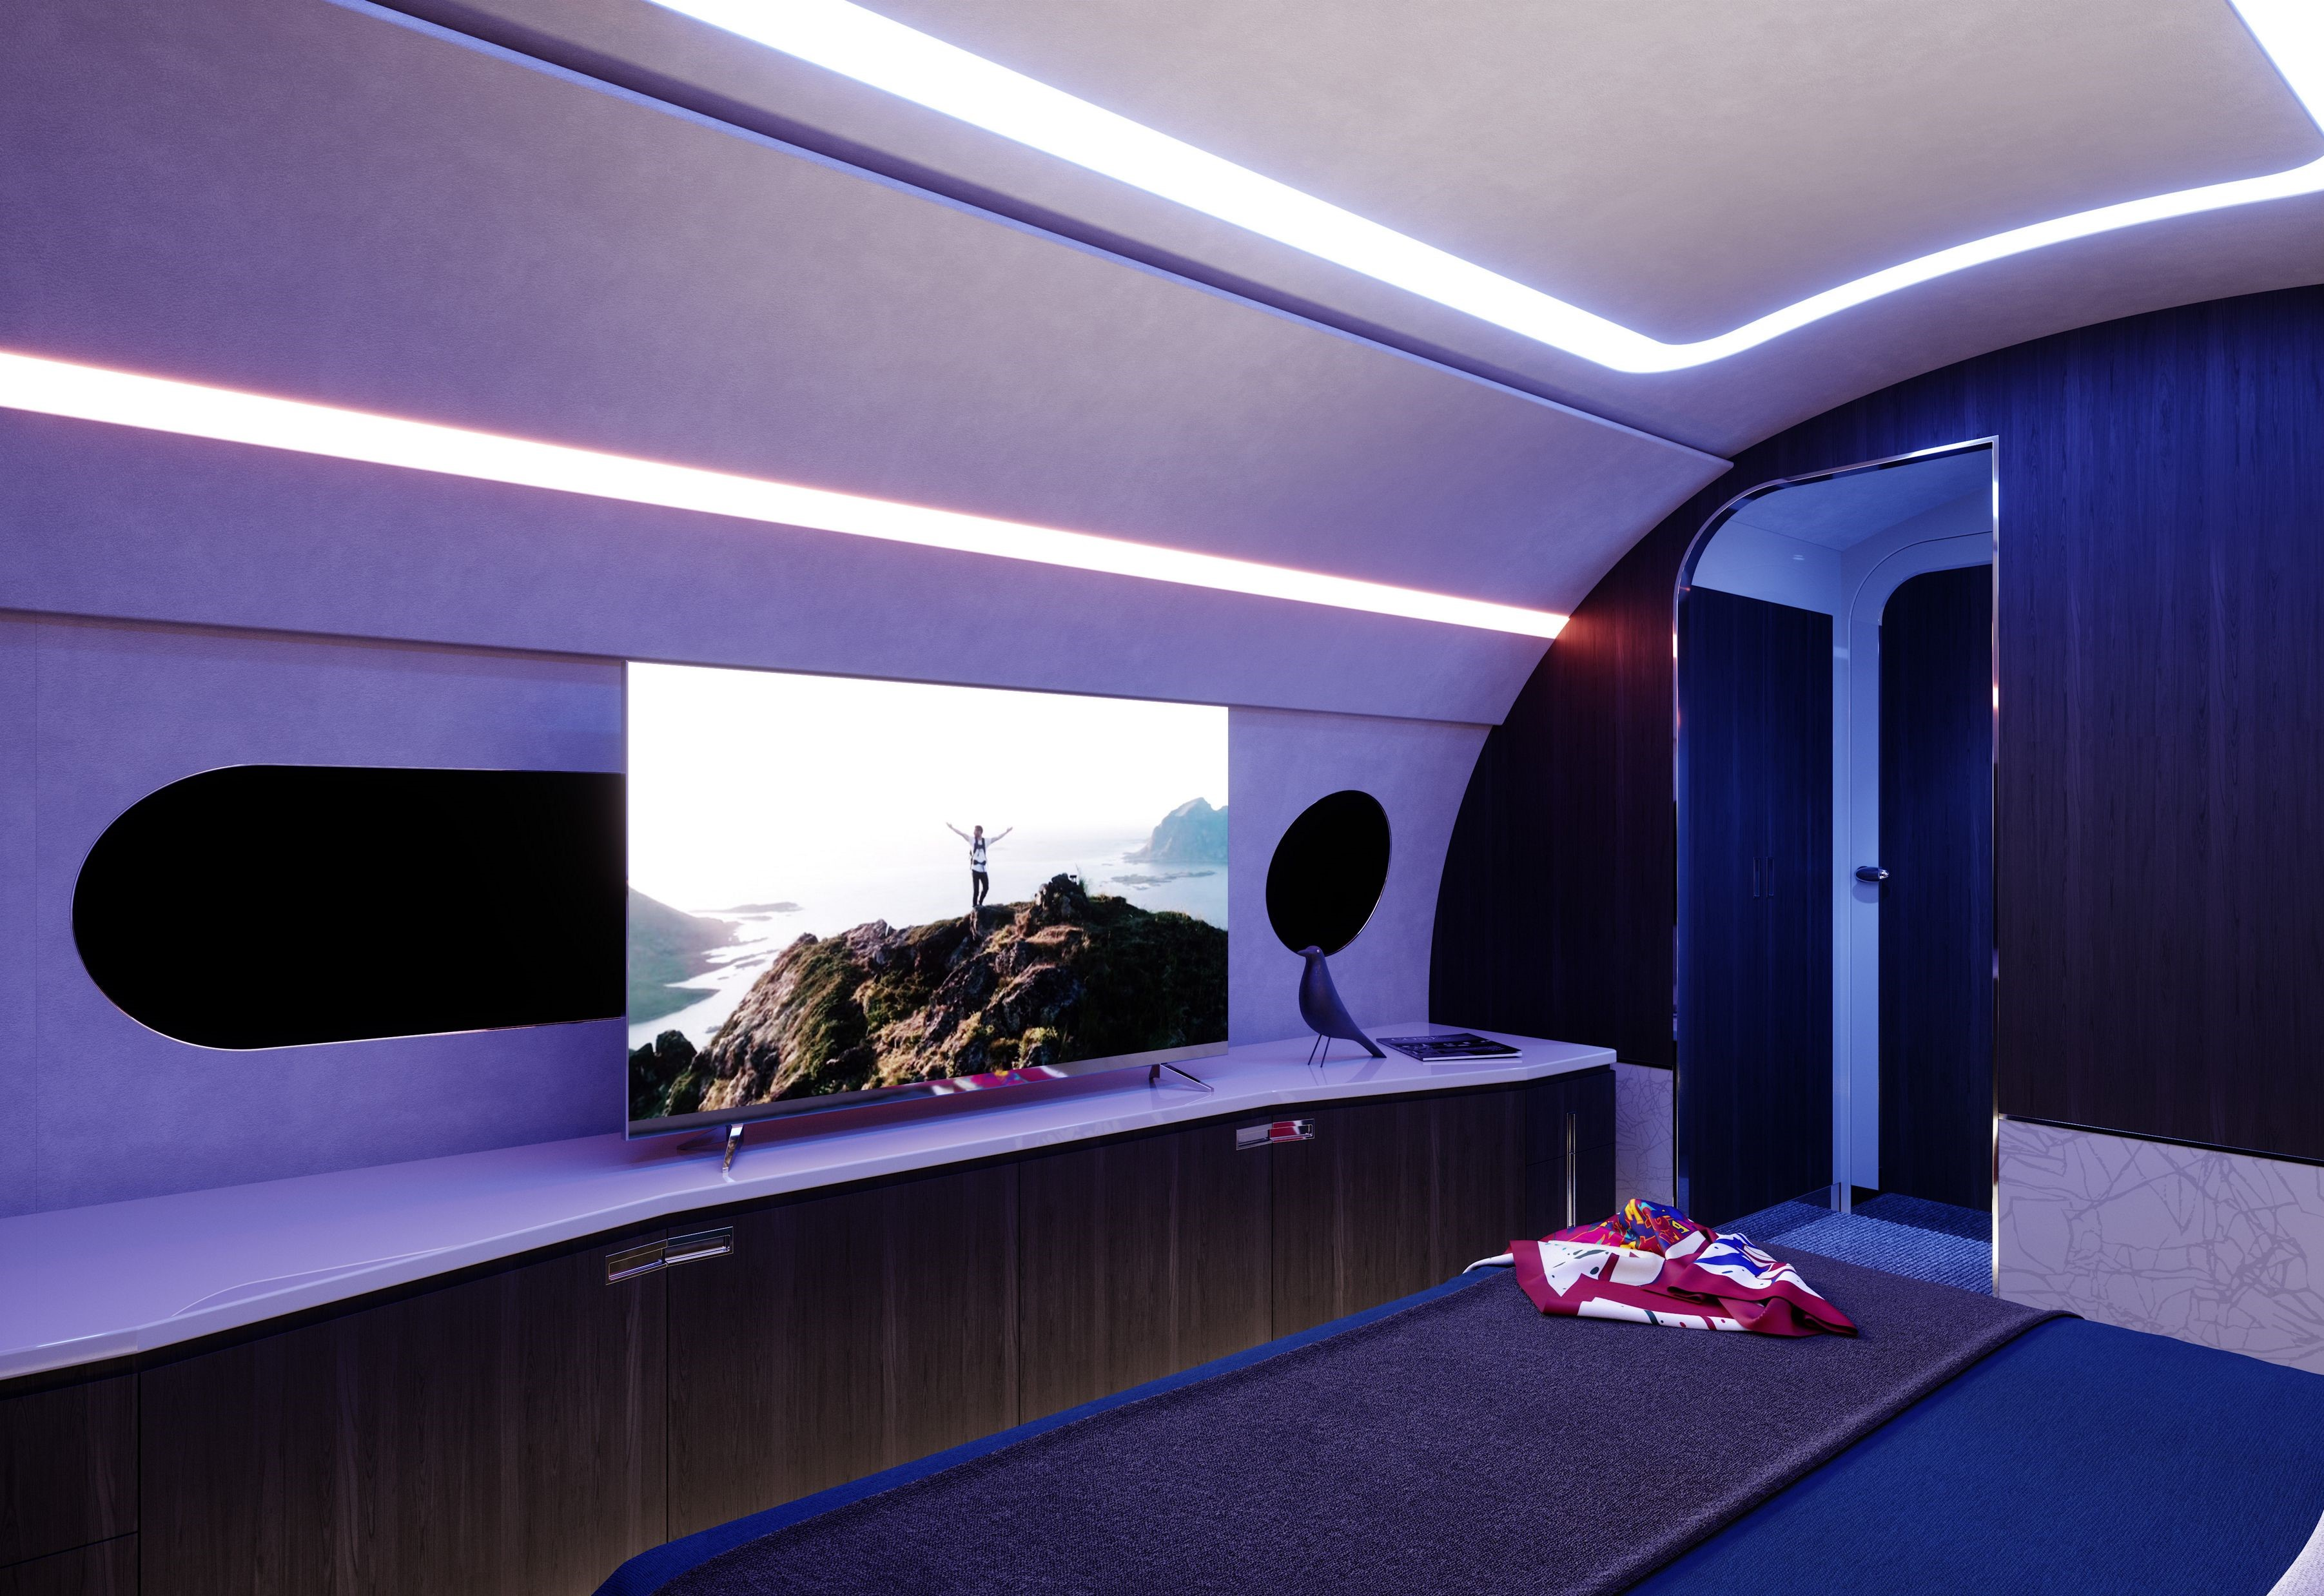 The latest luxury custom private jets feature private bathrooms and bedrooms for corporate travelers, allowing travelers to fly non-stop from Tokyo to Dubai or from Beijing to Melbourne